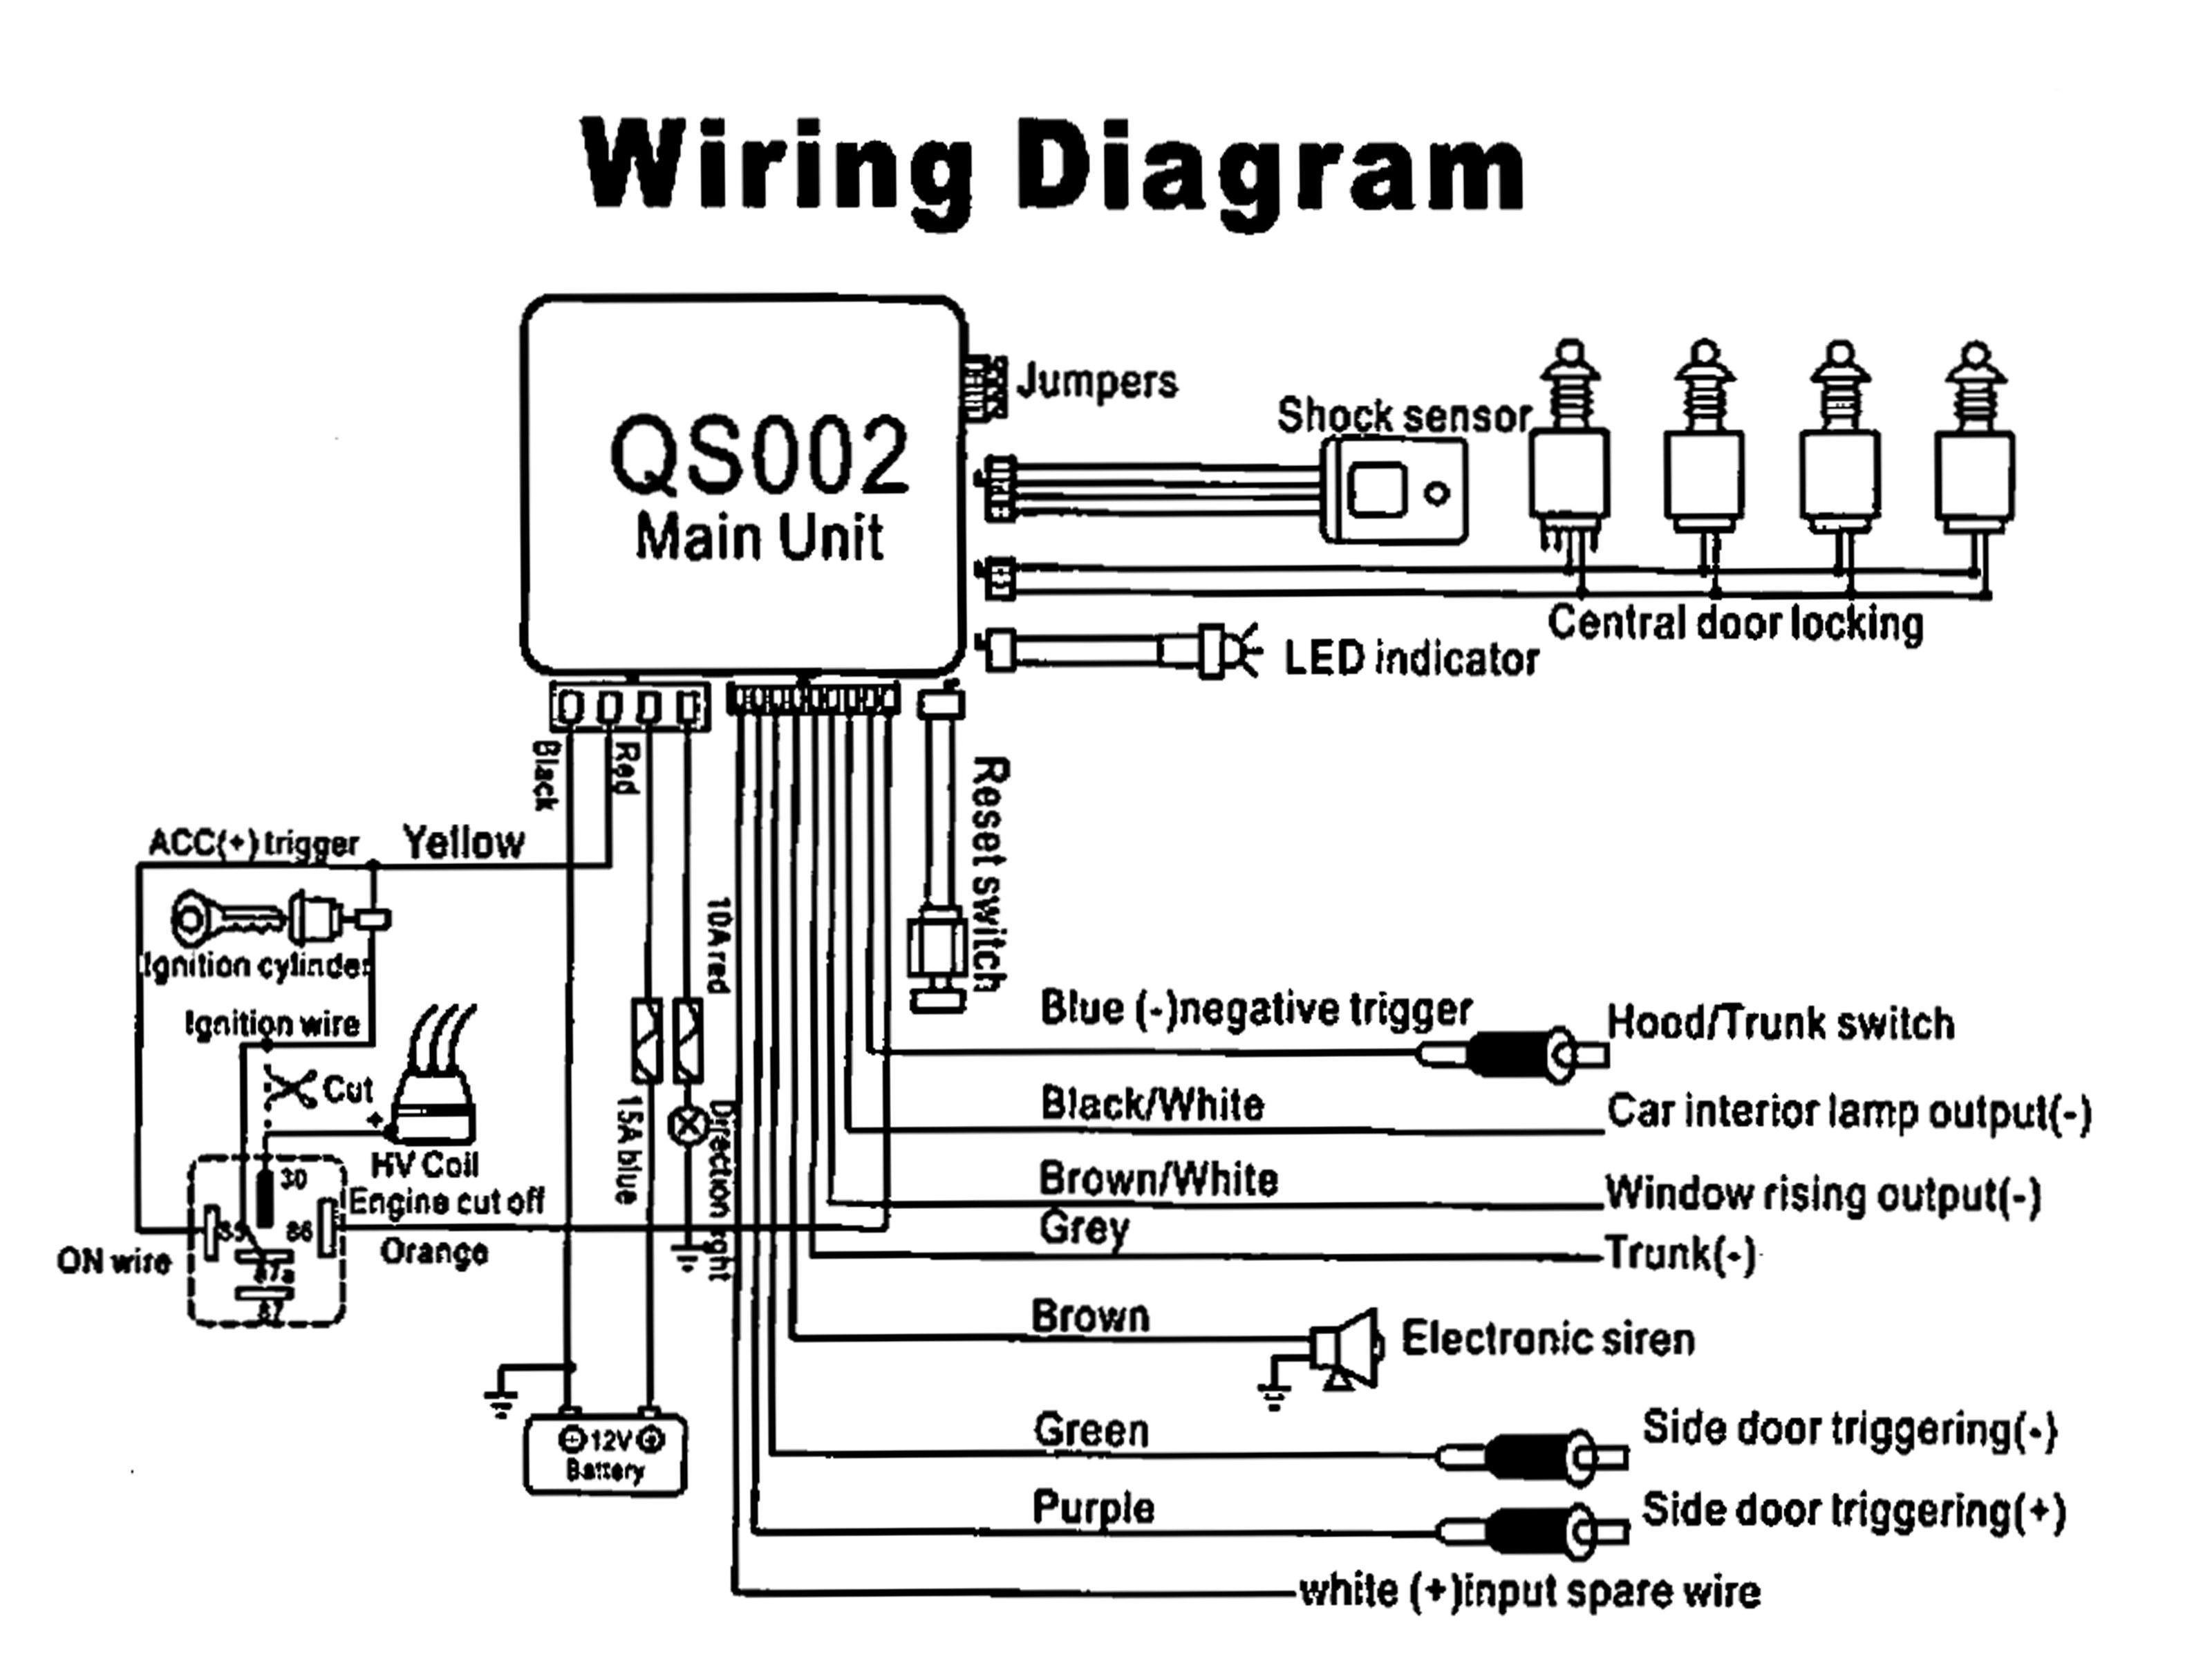 Car Alarm Wiring Diagram Car Alarm Wiring Diagram New Avs Best With L on Viper Wiring Charts